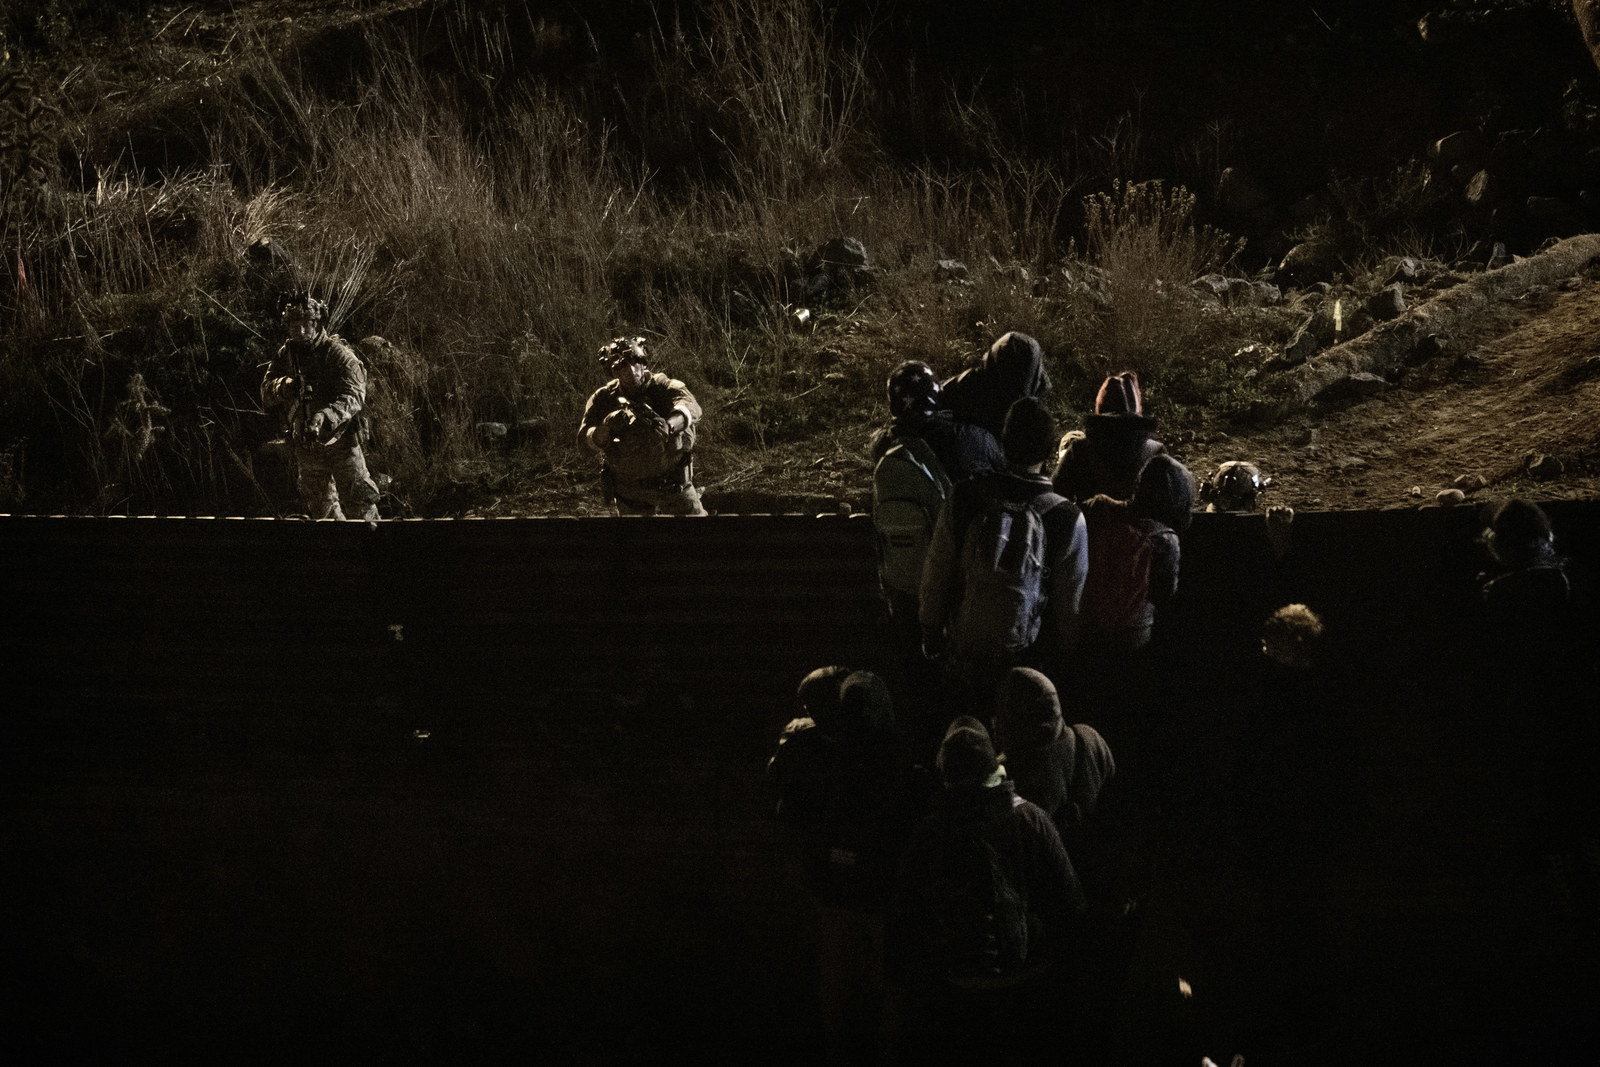 U.S. Border Protection officers point their weapons at migrants as they prepare to cross the border fence to get into the U.S. side to San Diego.